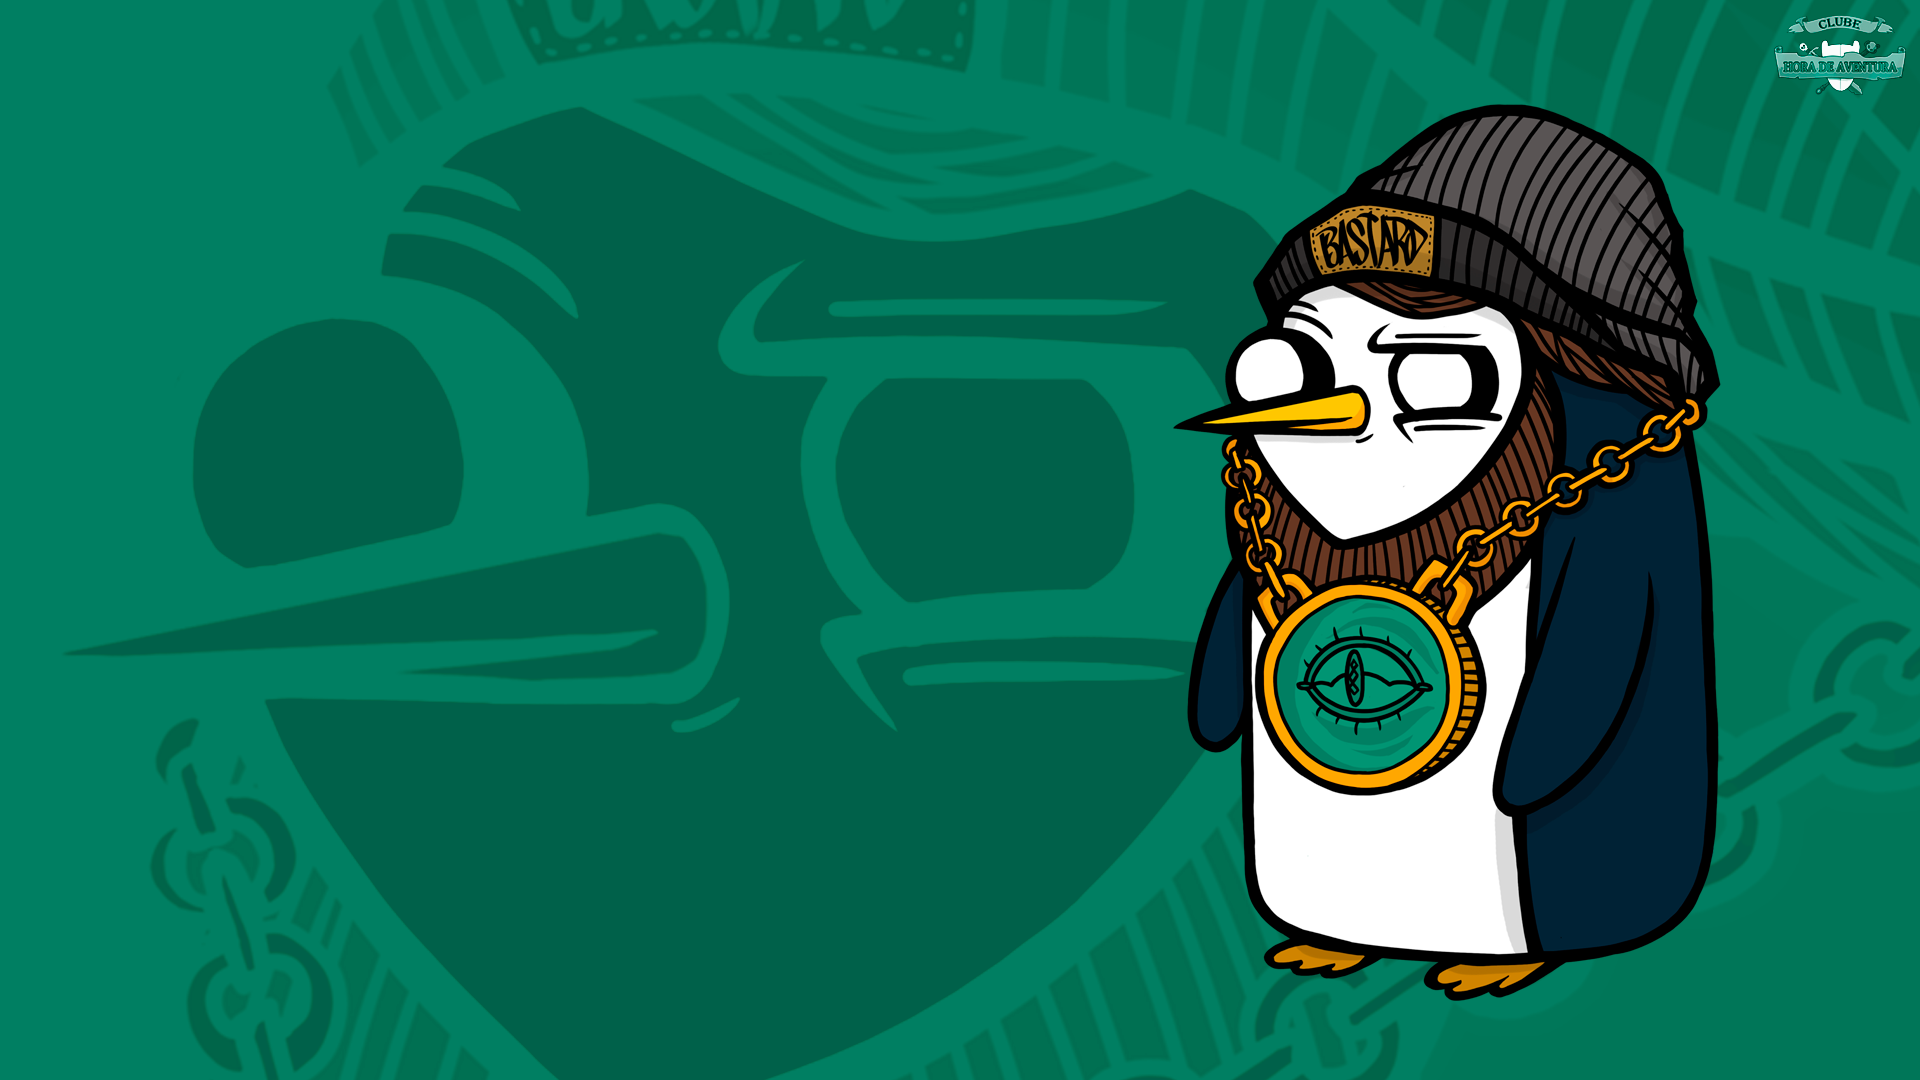 Wallpaper Gunter - Clube Hora de Aventura